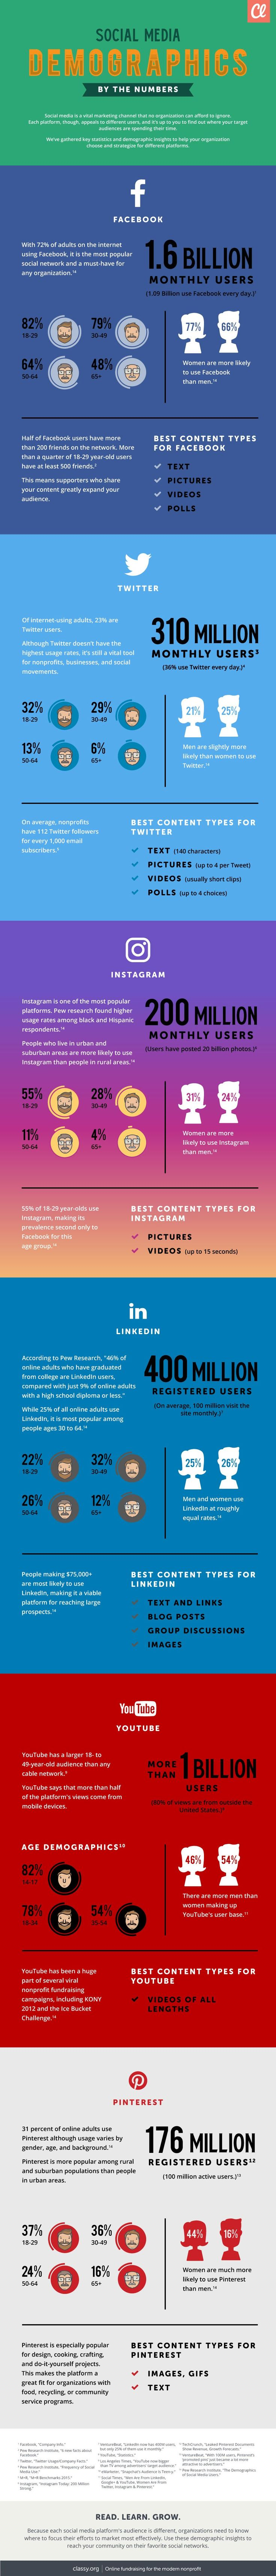 Social Media Demographics By the Numbers - #Infographic